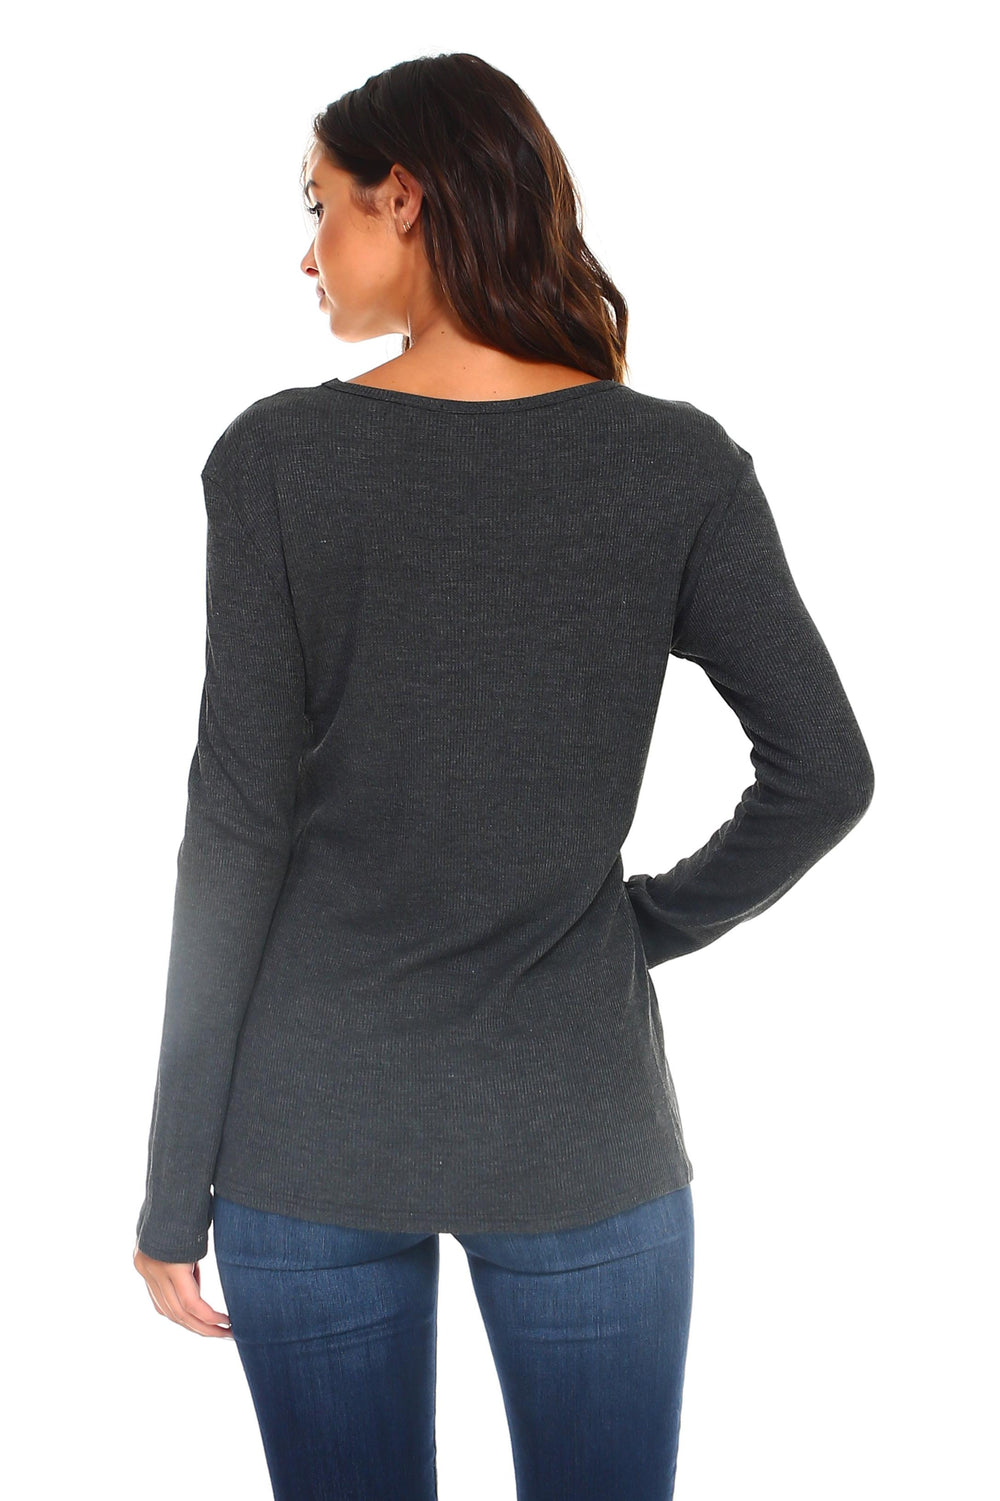 Women's Lace Up Long Sleeve Top